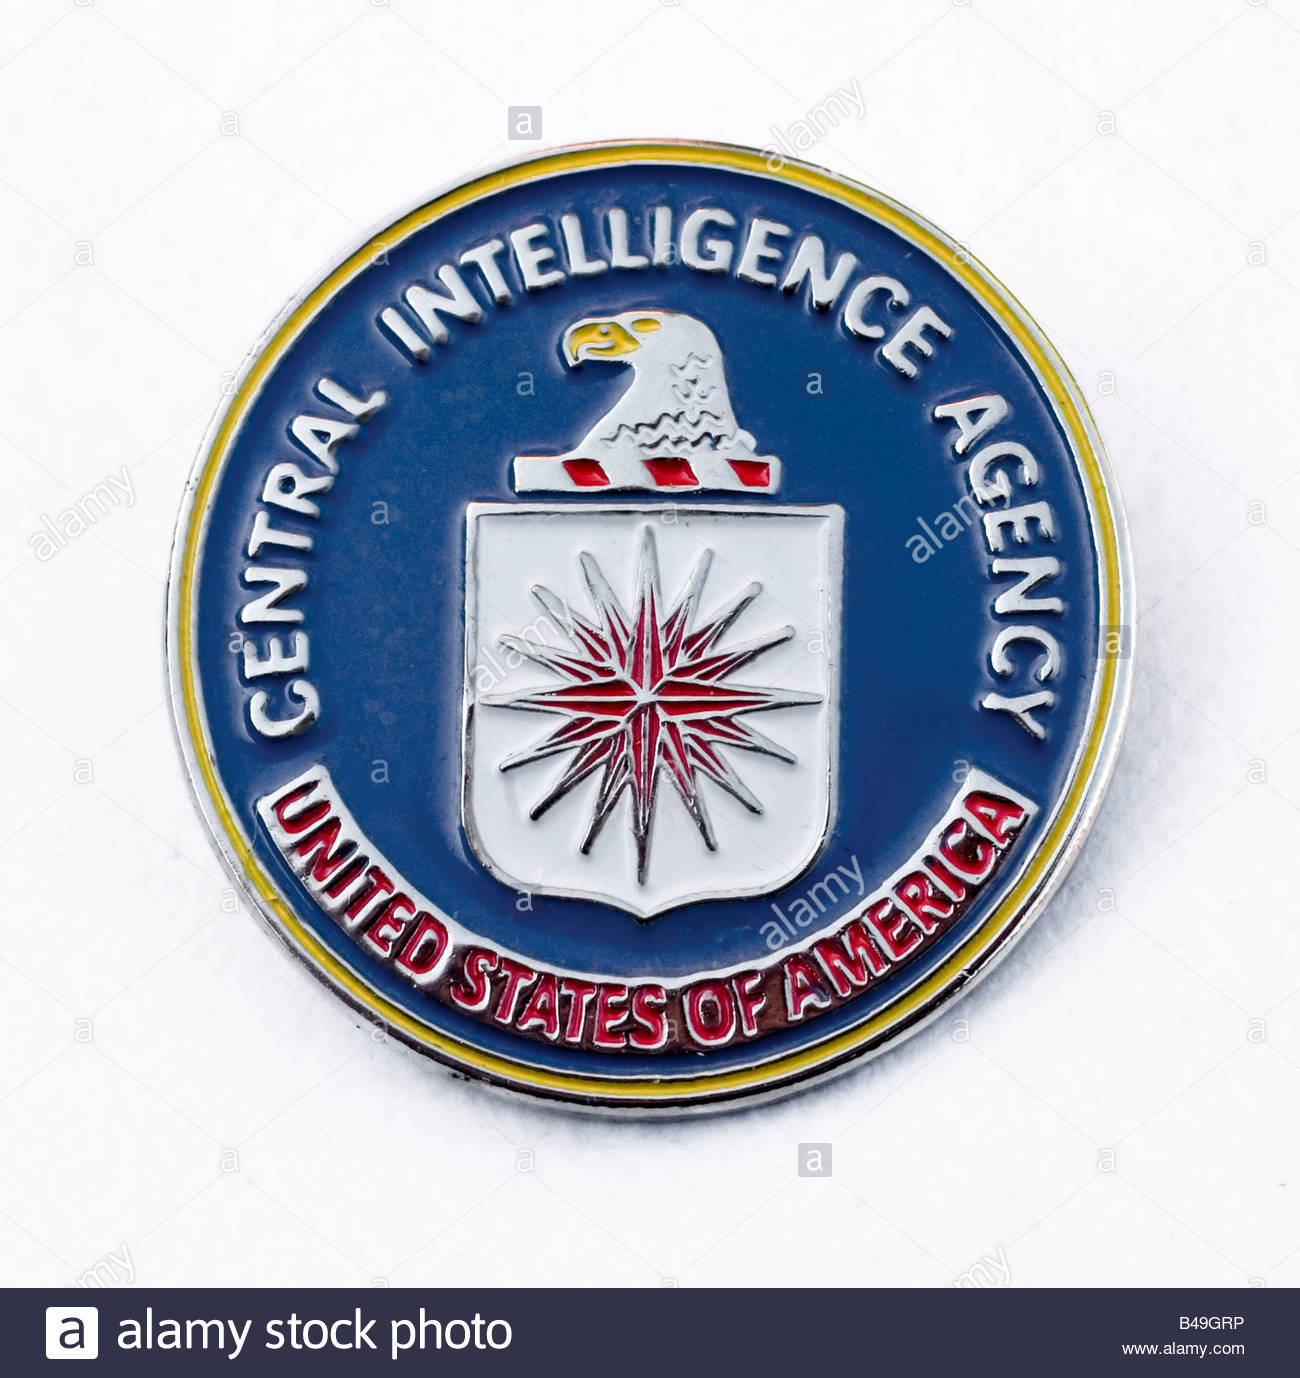 central intelligence agency - Stock Image